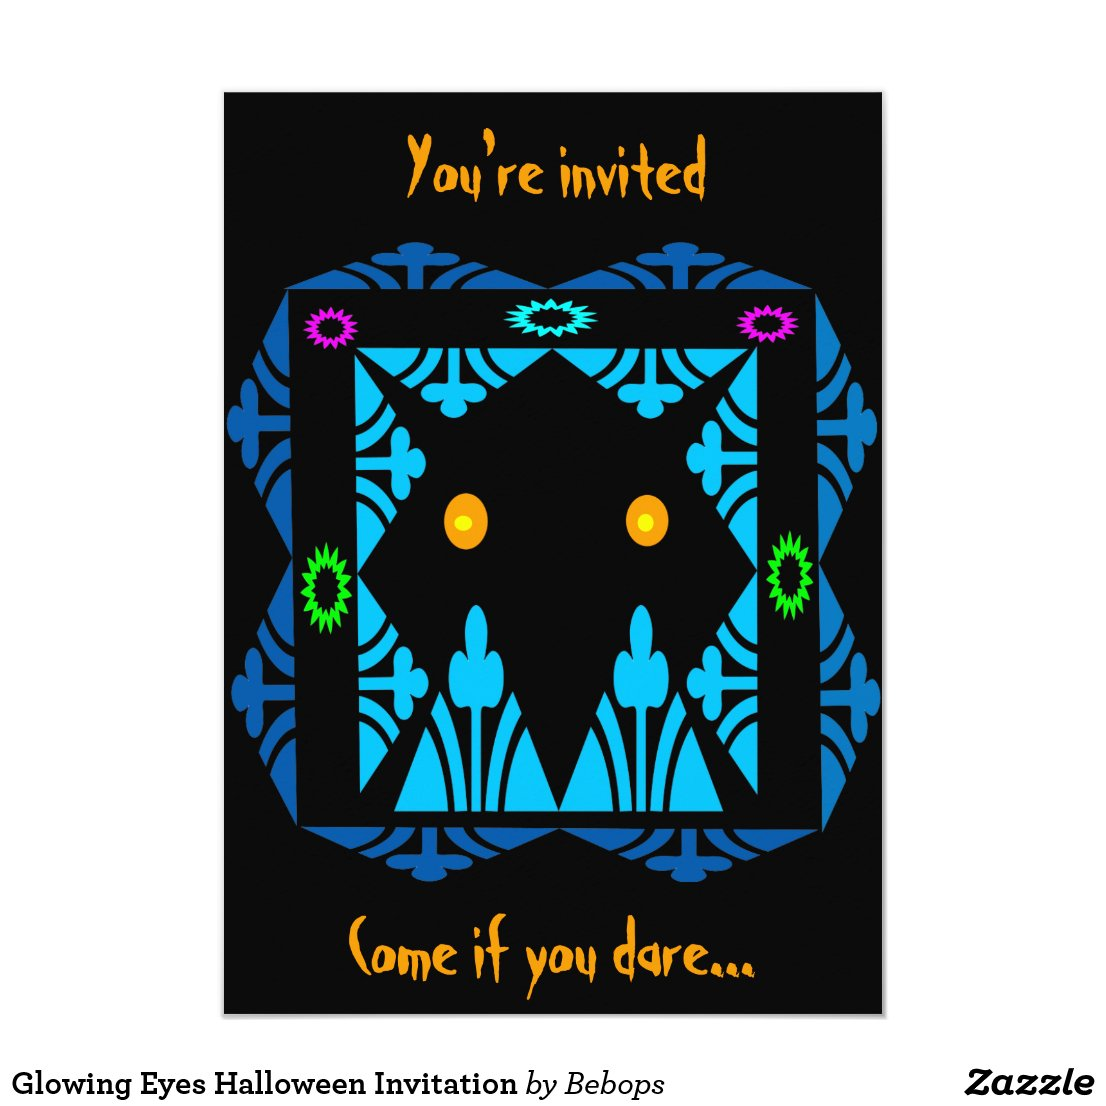 Glowing Eyes Halloween Invitation